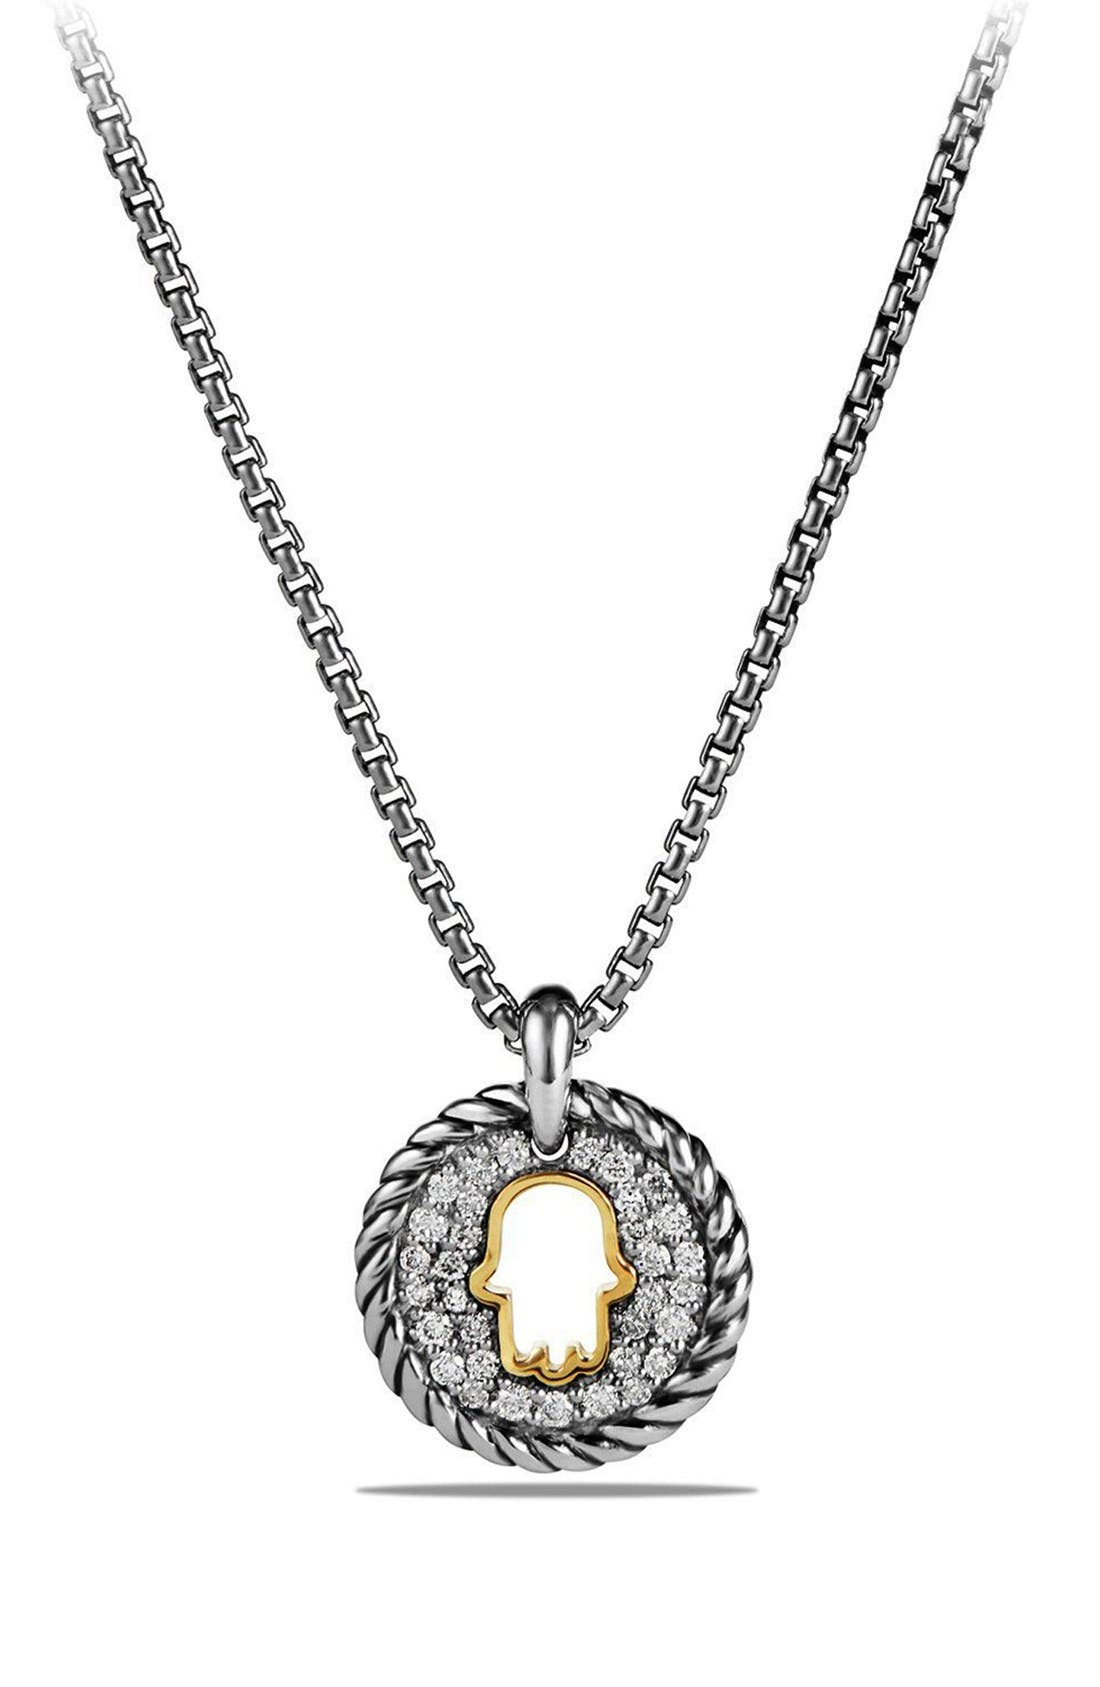 Main Image - David Yurman 'Cable Collectibles' Hamsa Charm Necklace with Diamonds & 18K Gold